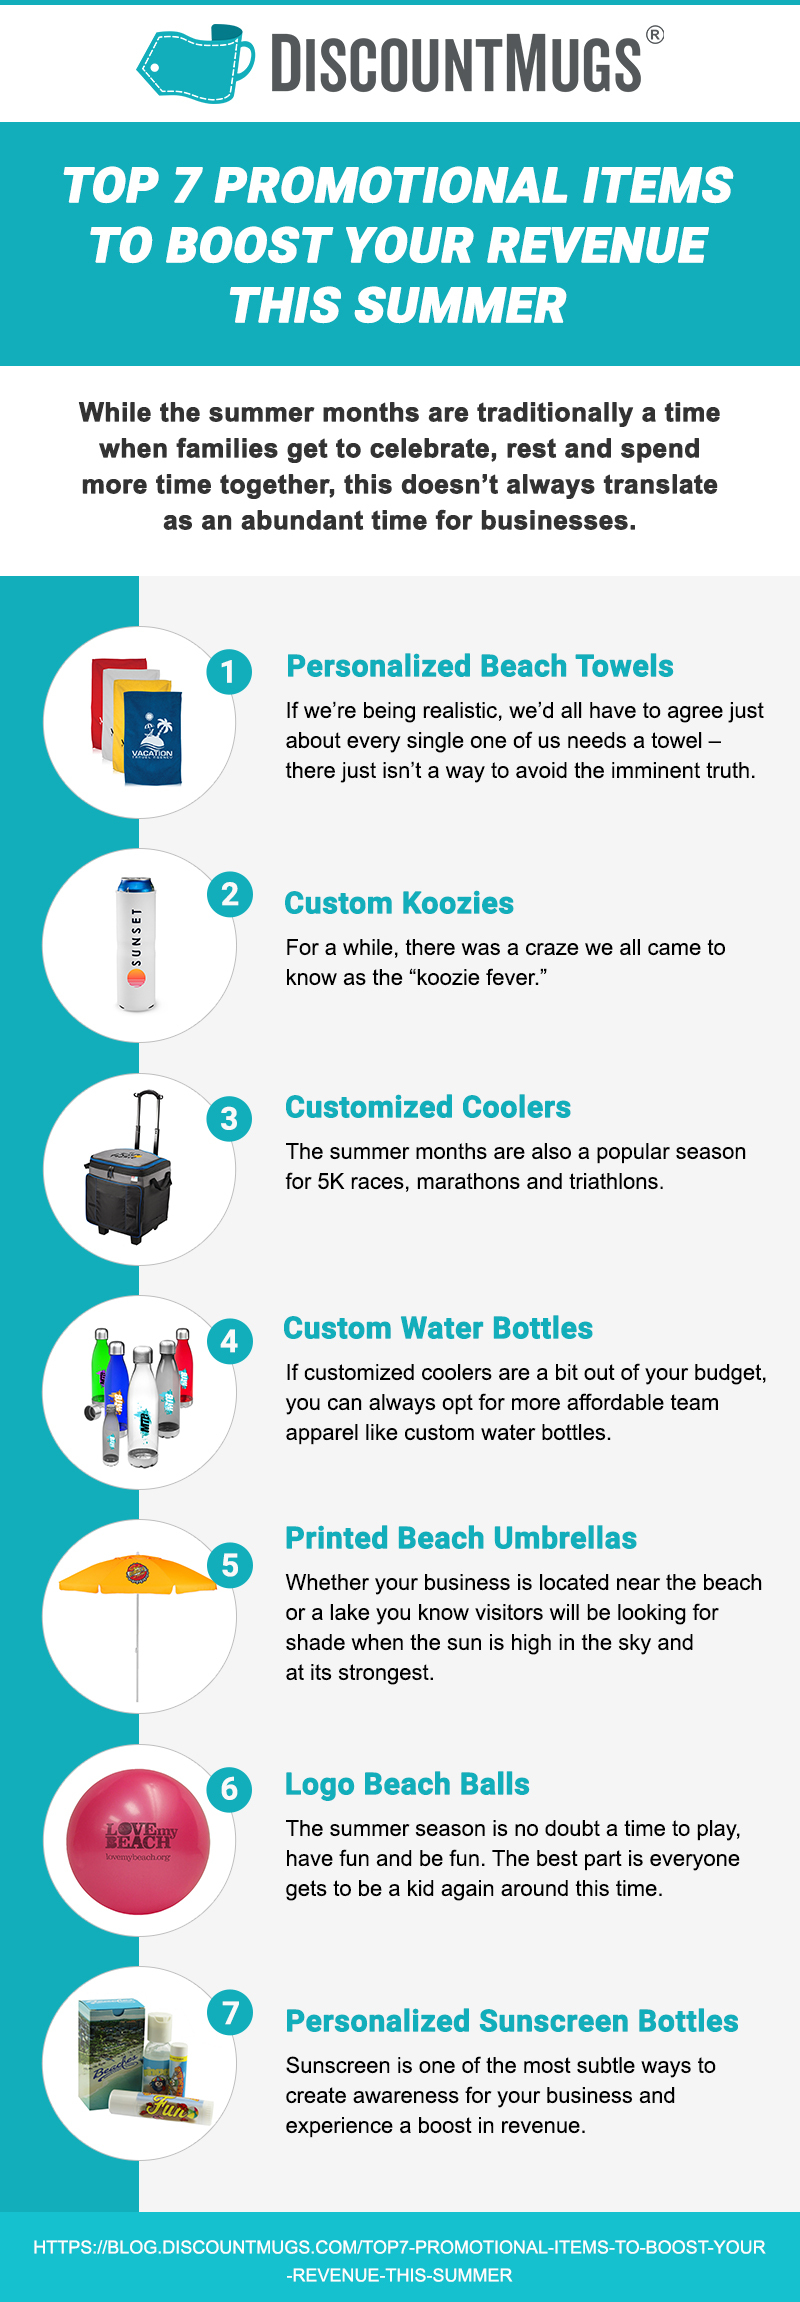 discountmug-infographic - top 7 promotional items to boost revenue summer